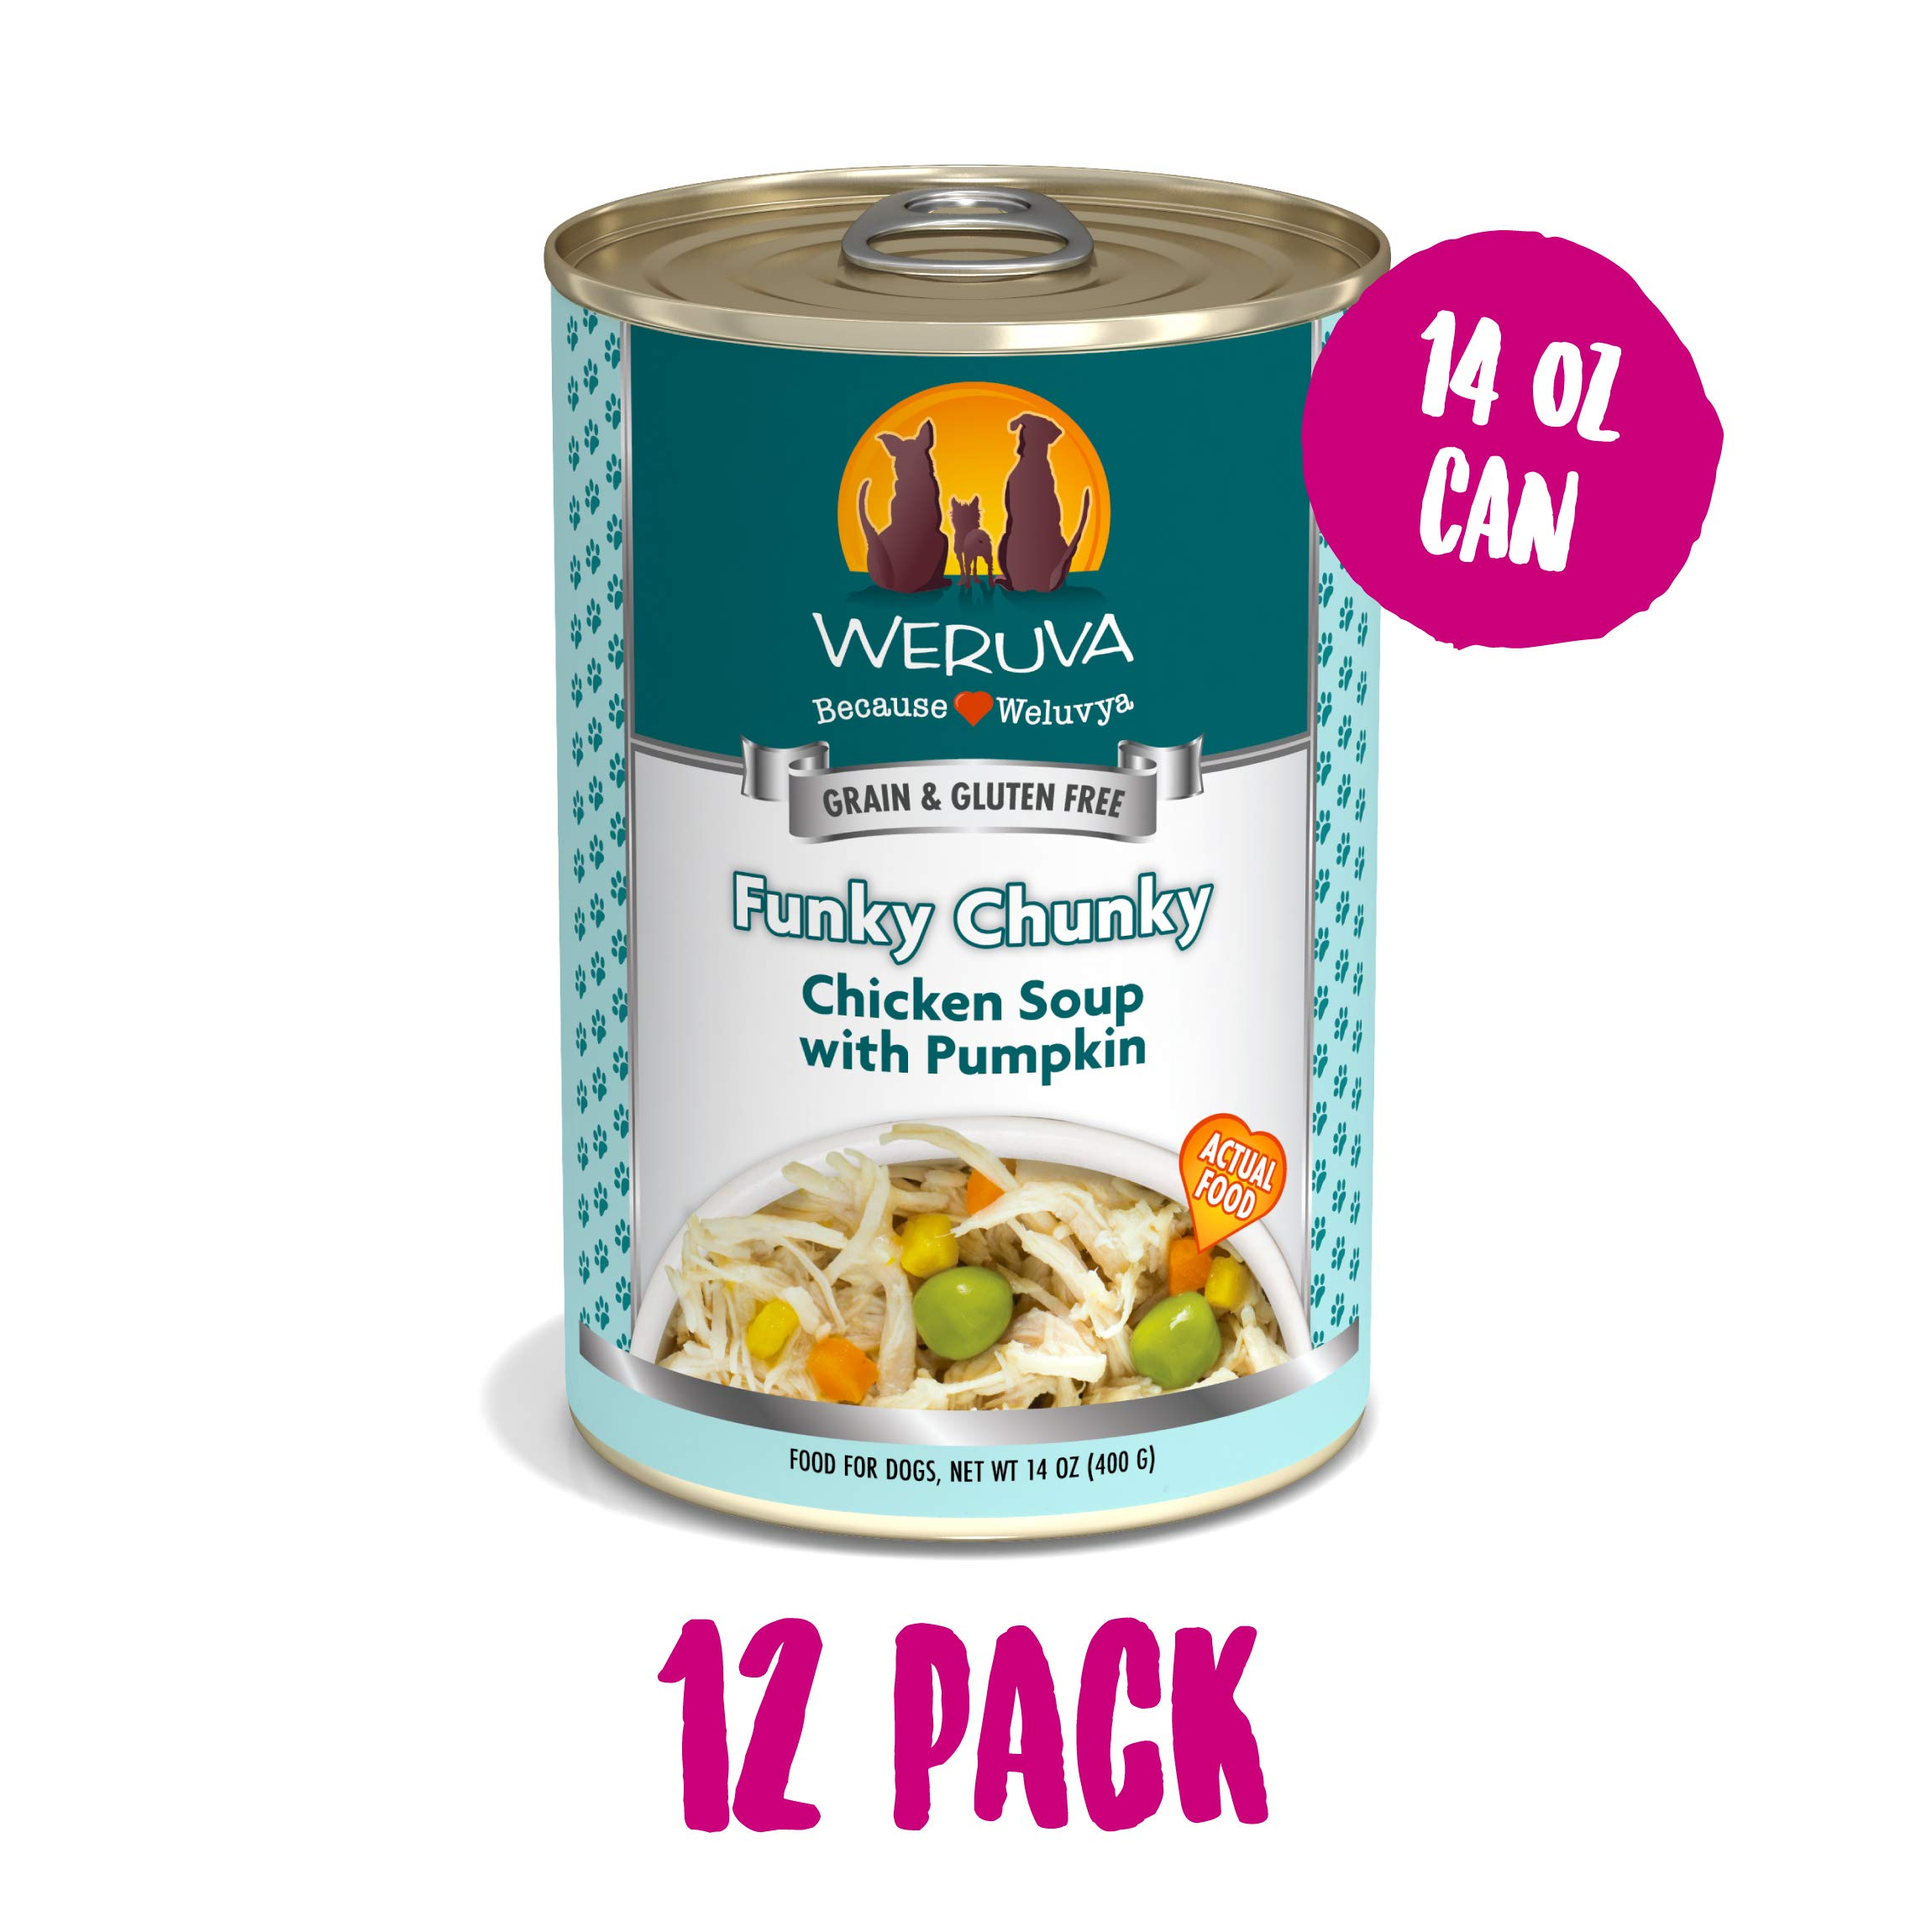 Weruva Classic Dog Food, Funky Chunky Chicken Soup with Chicken Breast & Pumpkin in Gravy, 14oz Can (Pack of 12) by Weruva